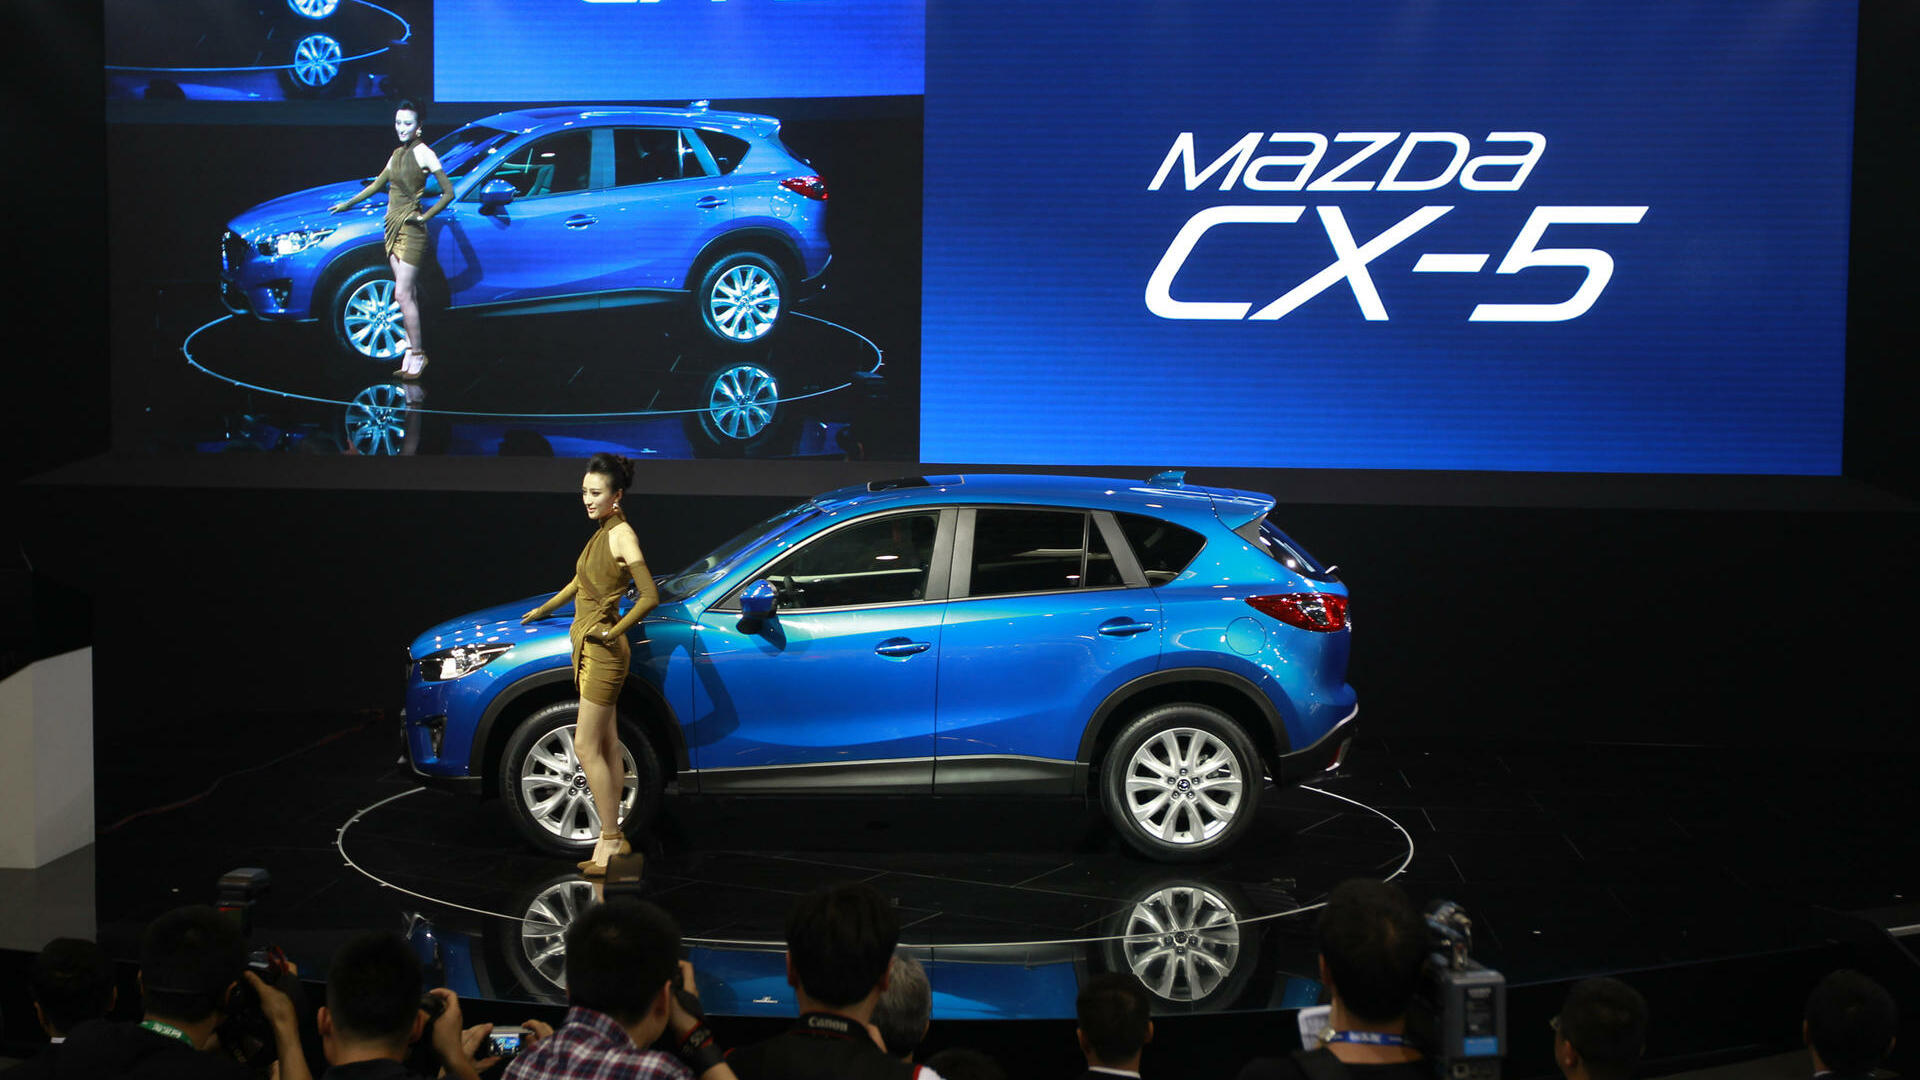 a model poses with Mazda's newly launched SUV CX-5 at the Beijing International Auto Exhibition in Beijing, China. Quelle: dapd